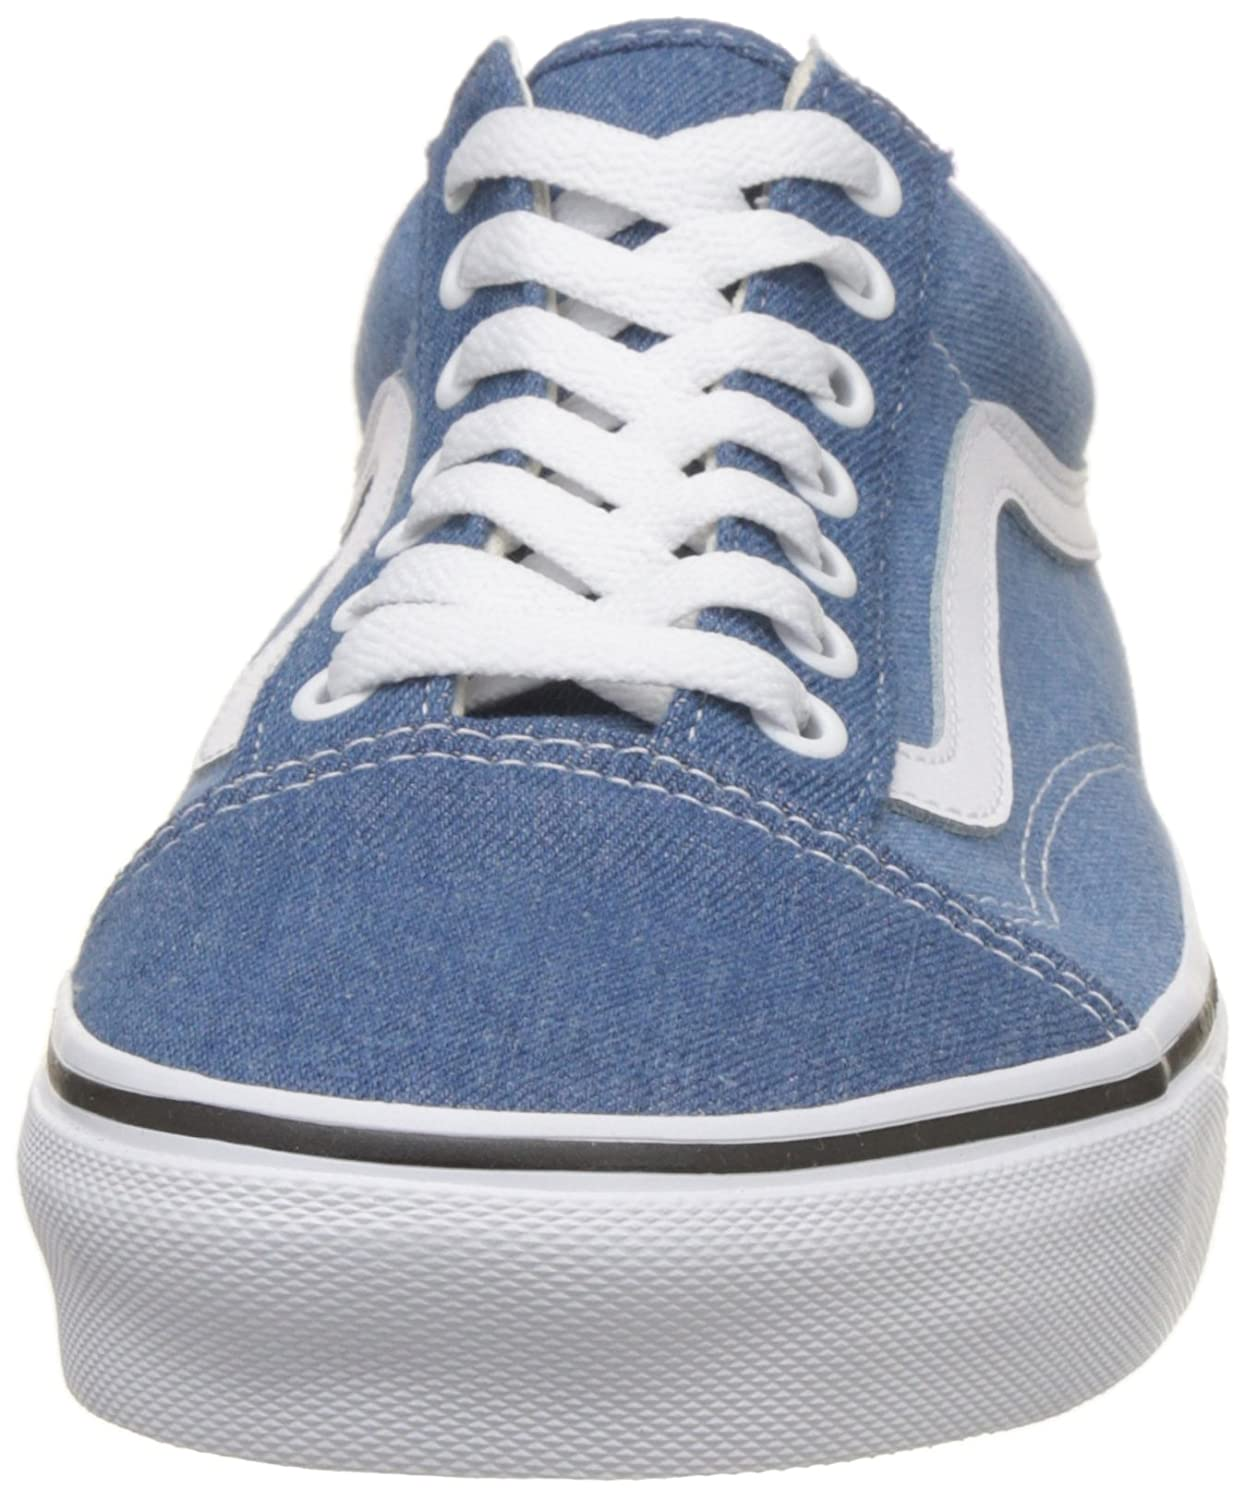 Vans Unisex Old Skool Classic Skate Shoes B076CVF6XG 9.5 M US Women / 8 M US Men|Denim 2 Tone Blue True White